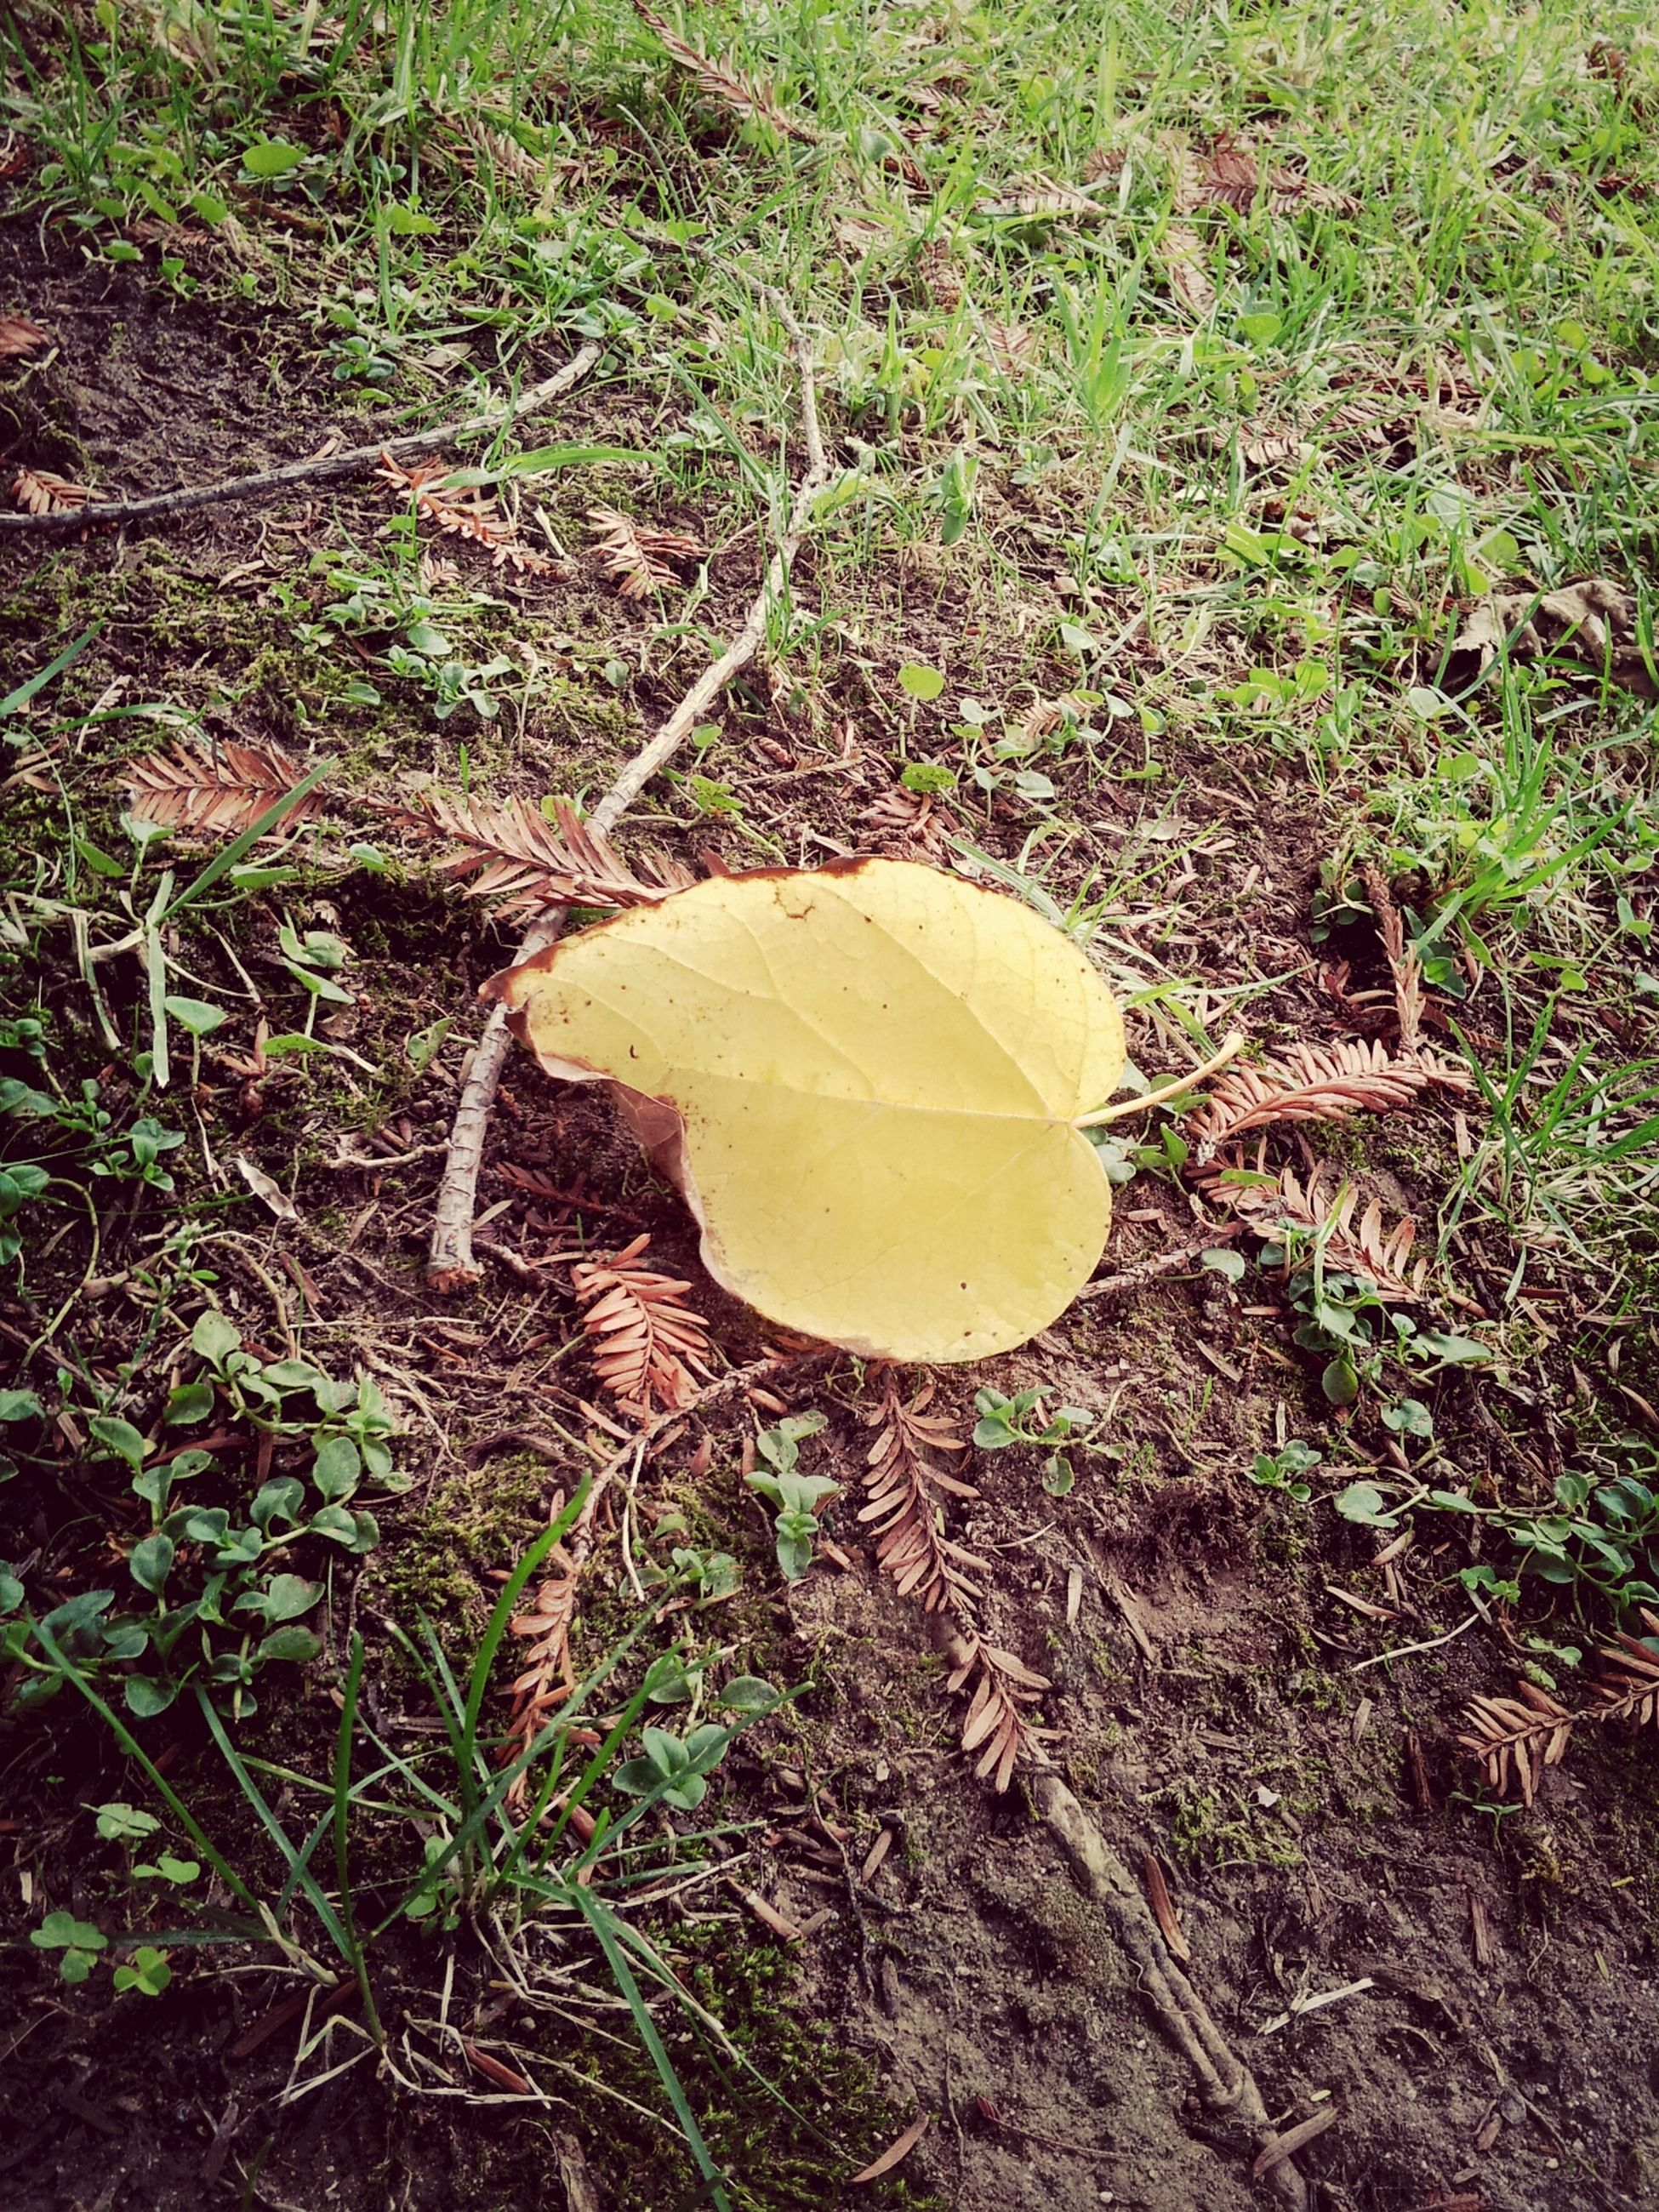 grass, leaf, high angle view, field, nature, dry, growth, yellow, autumn, fallen, green color, plant, grassy, day, ground, outdoors, change, no people, tranquility, leaves